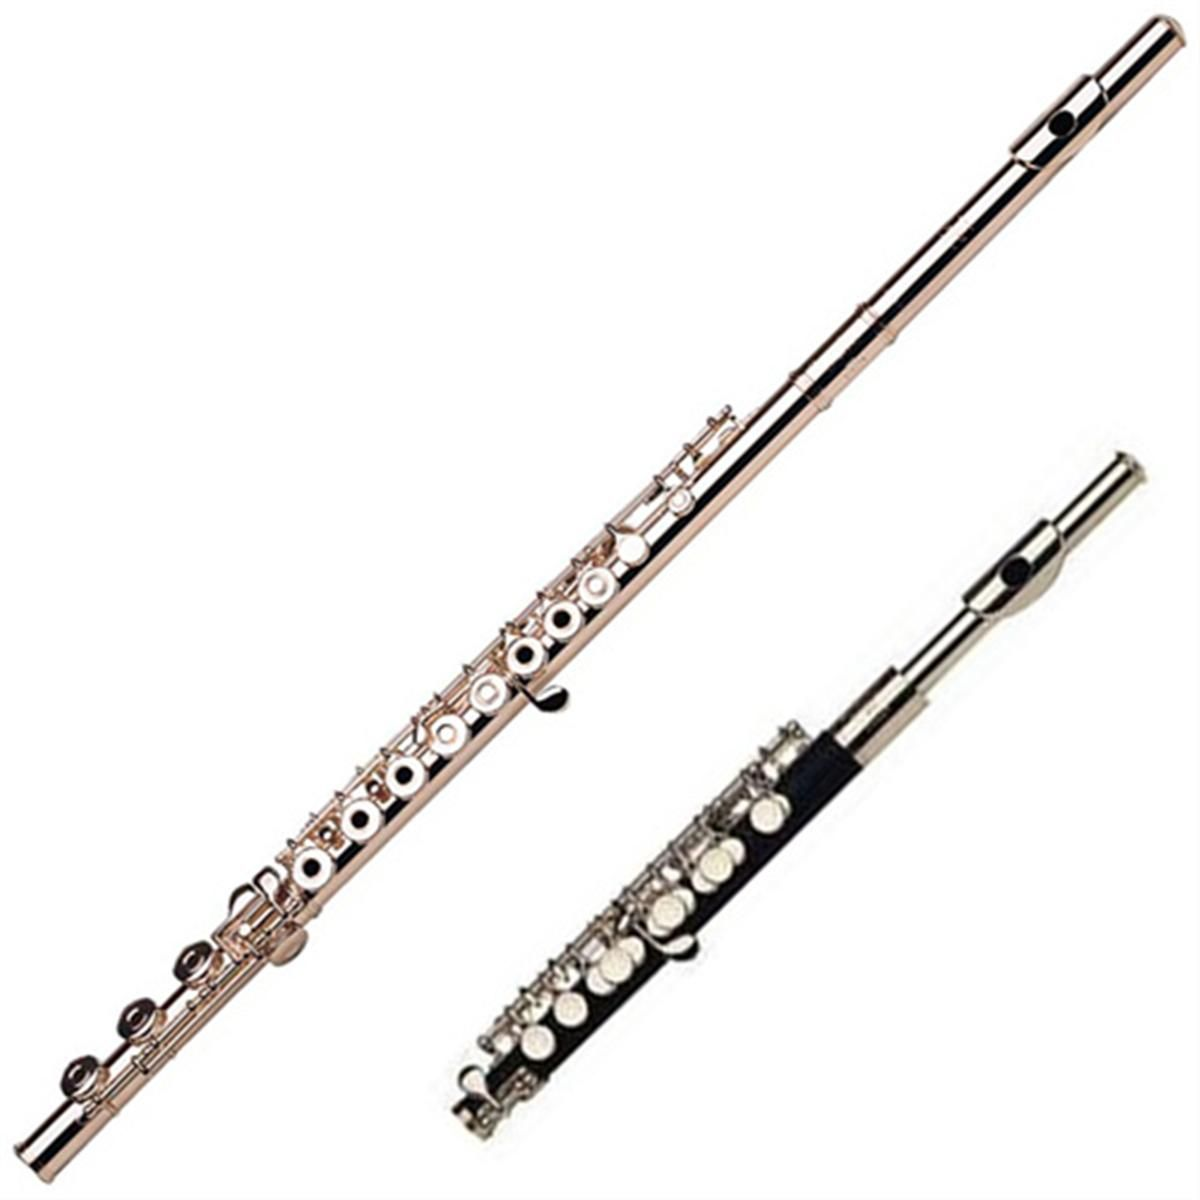 Gemeinhardt 3oshb Flute And 4pmh Piccolo Combo And More C Flutes W Flute Piccolo Woodwind Instruments